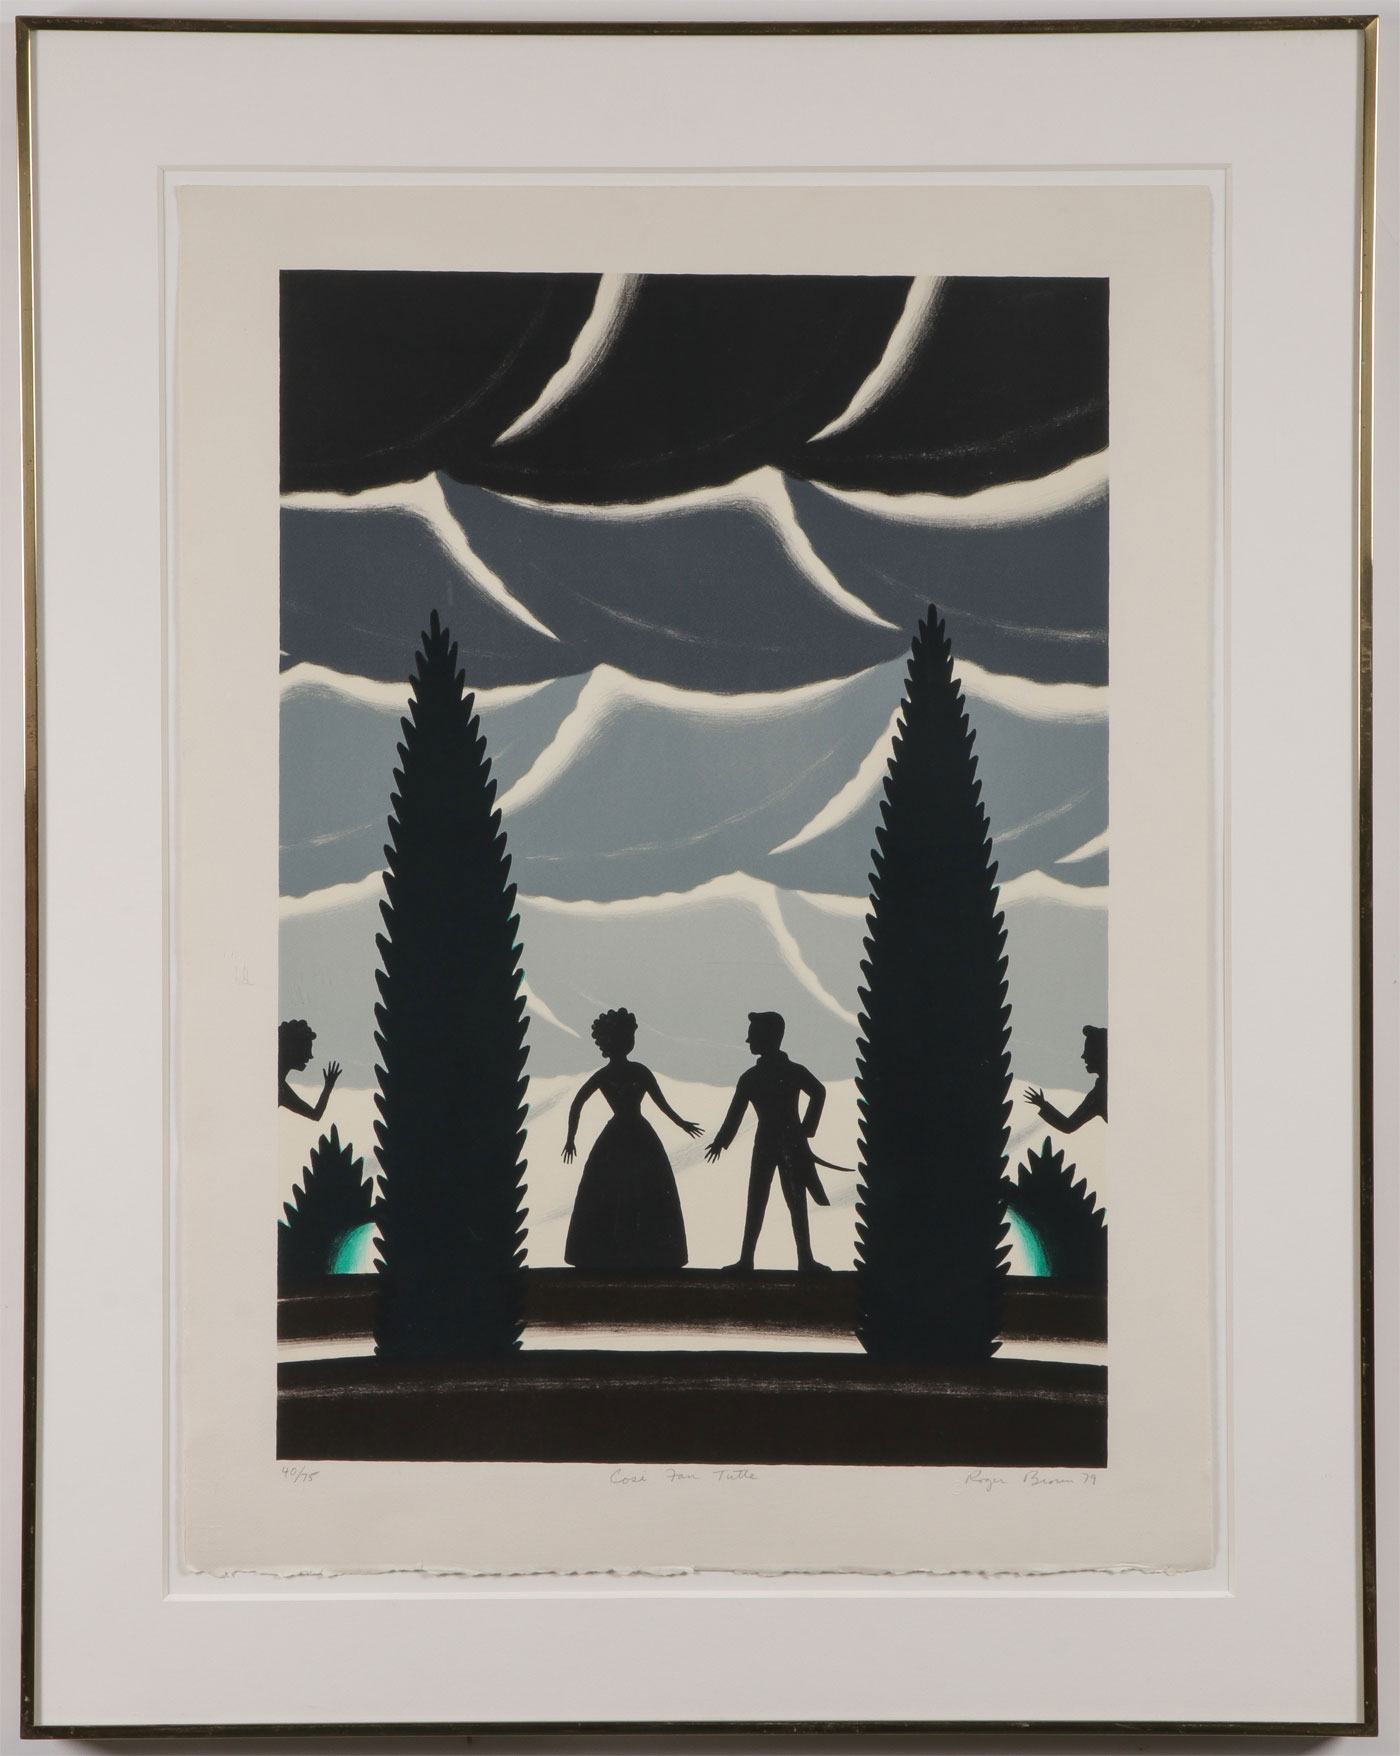 ROGER BROWN SIGNED SILKSCREEN - Image 2 of 4